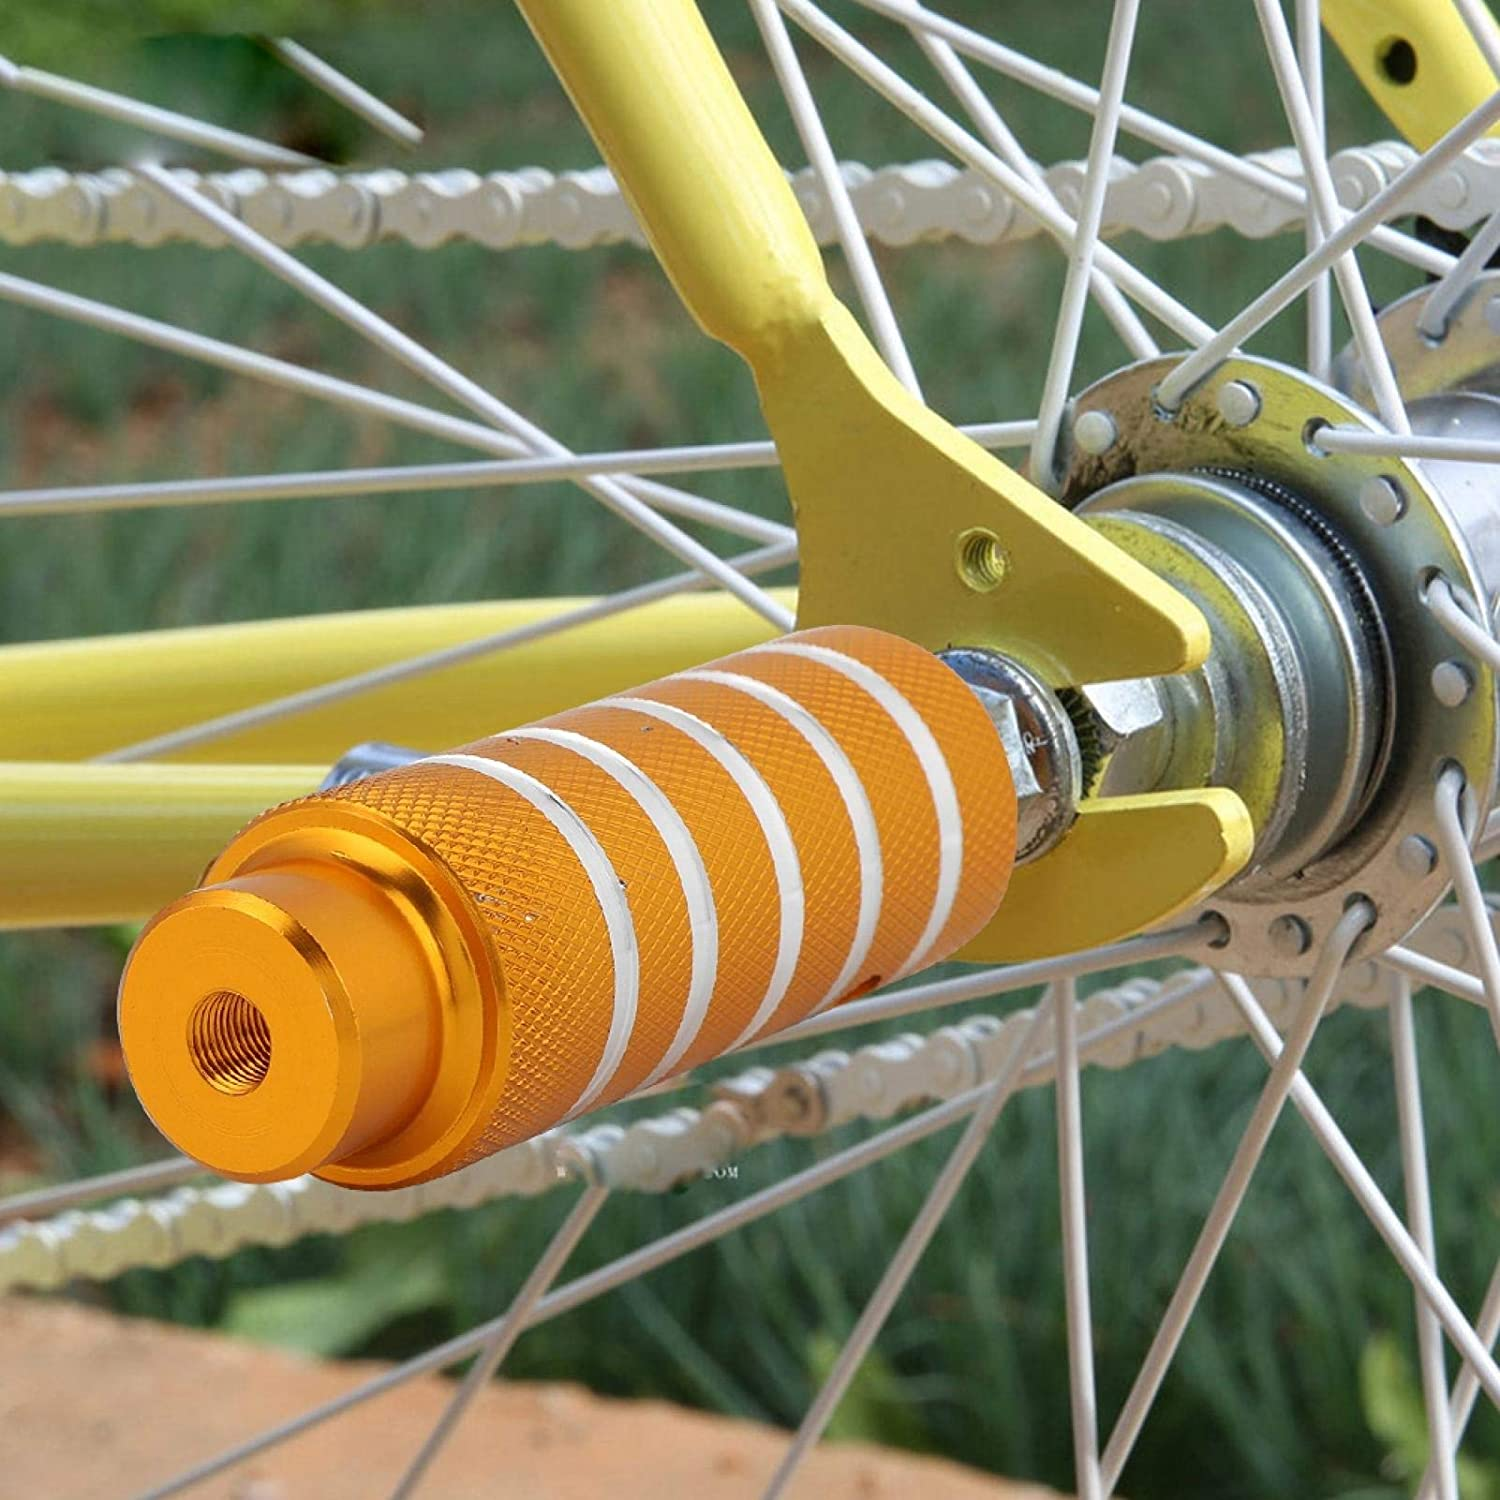 Jazar Sturdy Heavy Duty Bike Stunt Our shop OFFers the best service Accessories Peg Popular overseas Bicycle